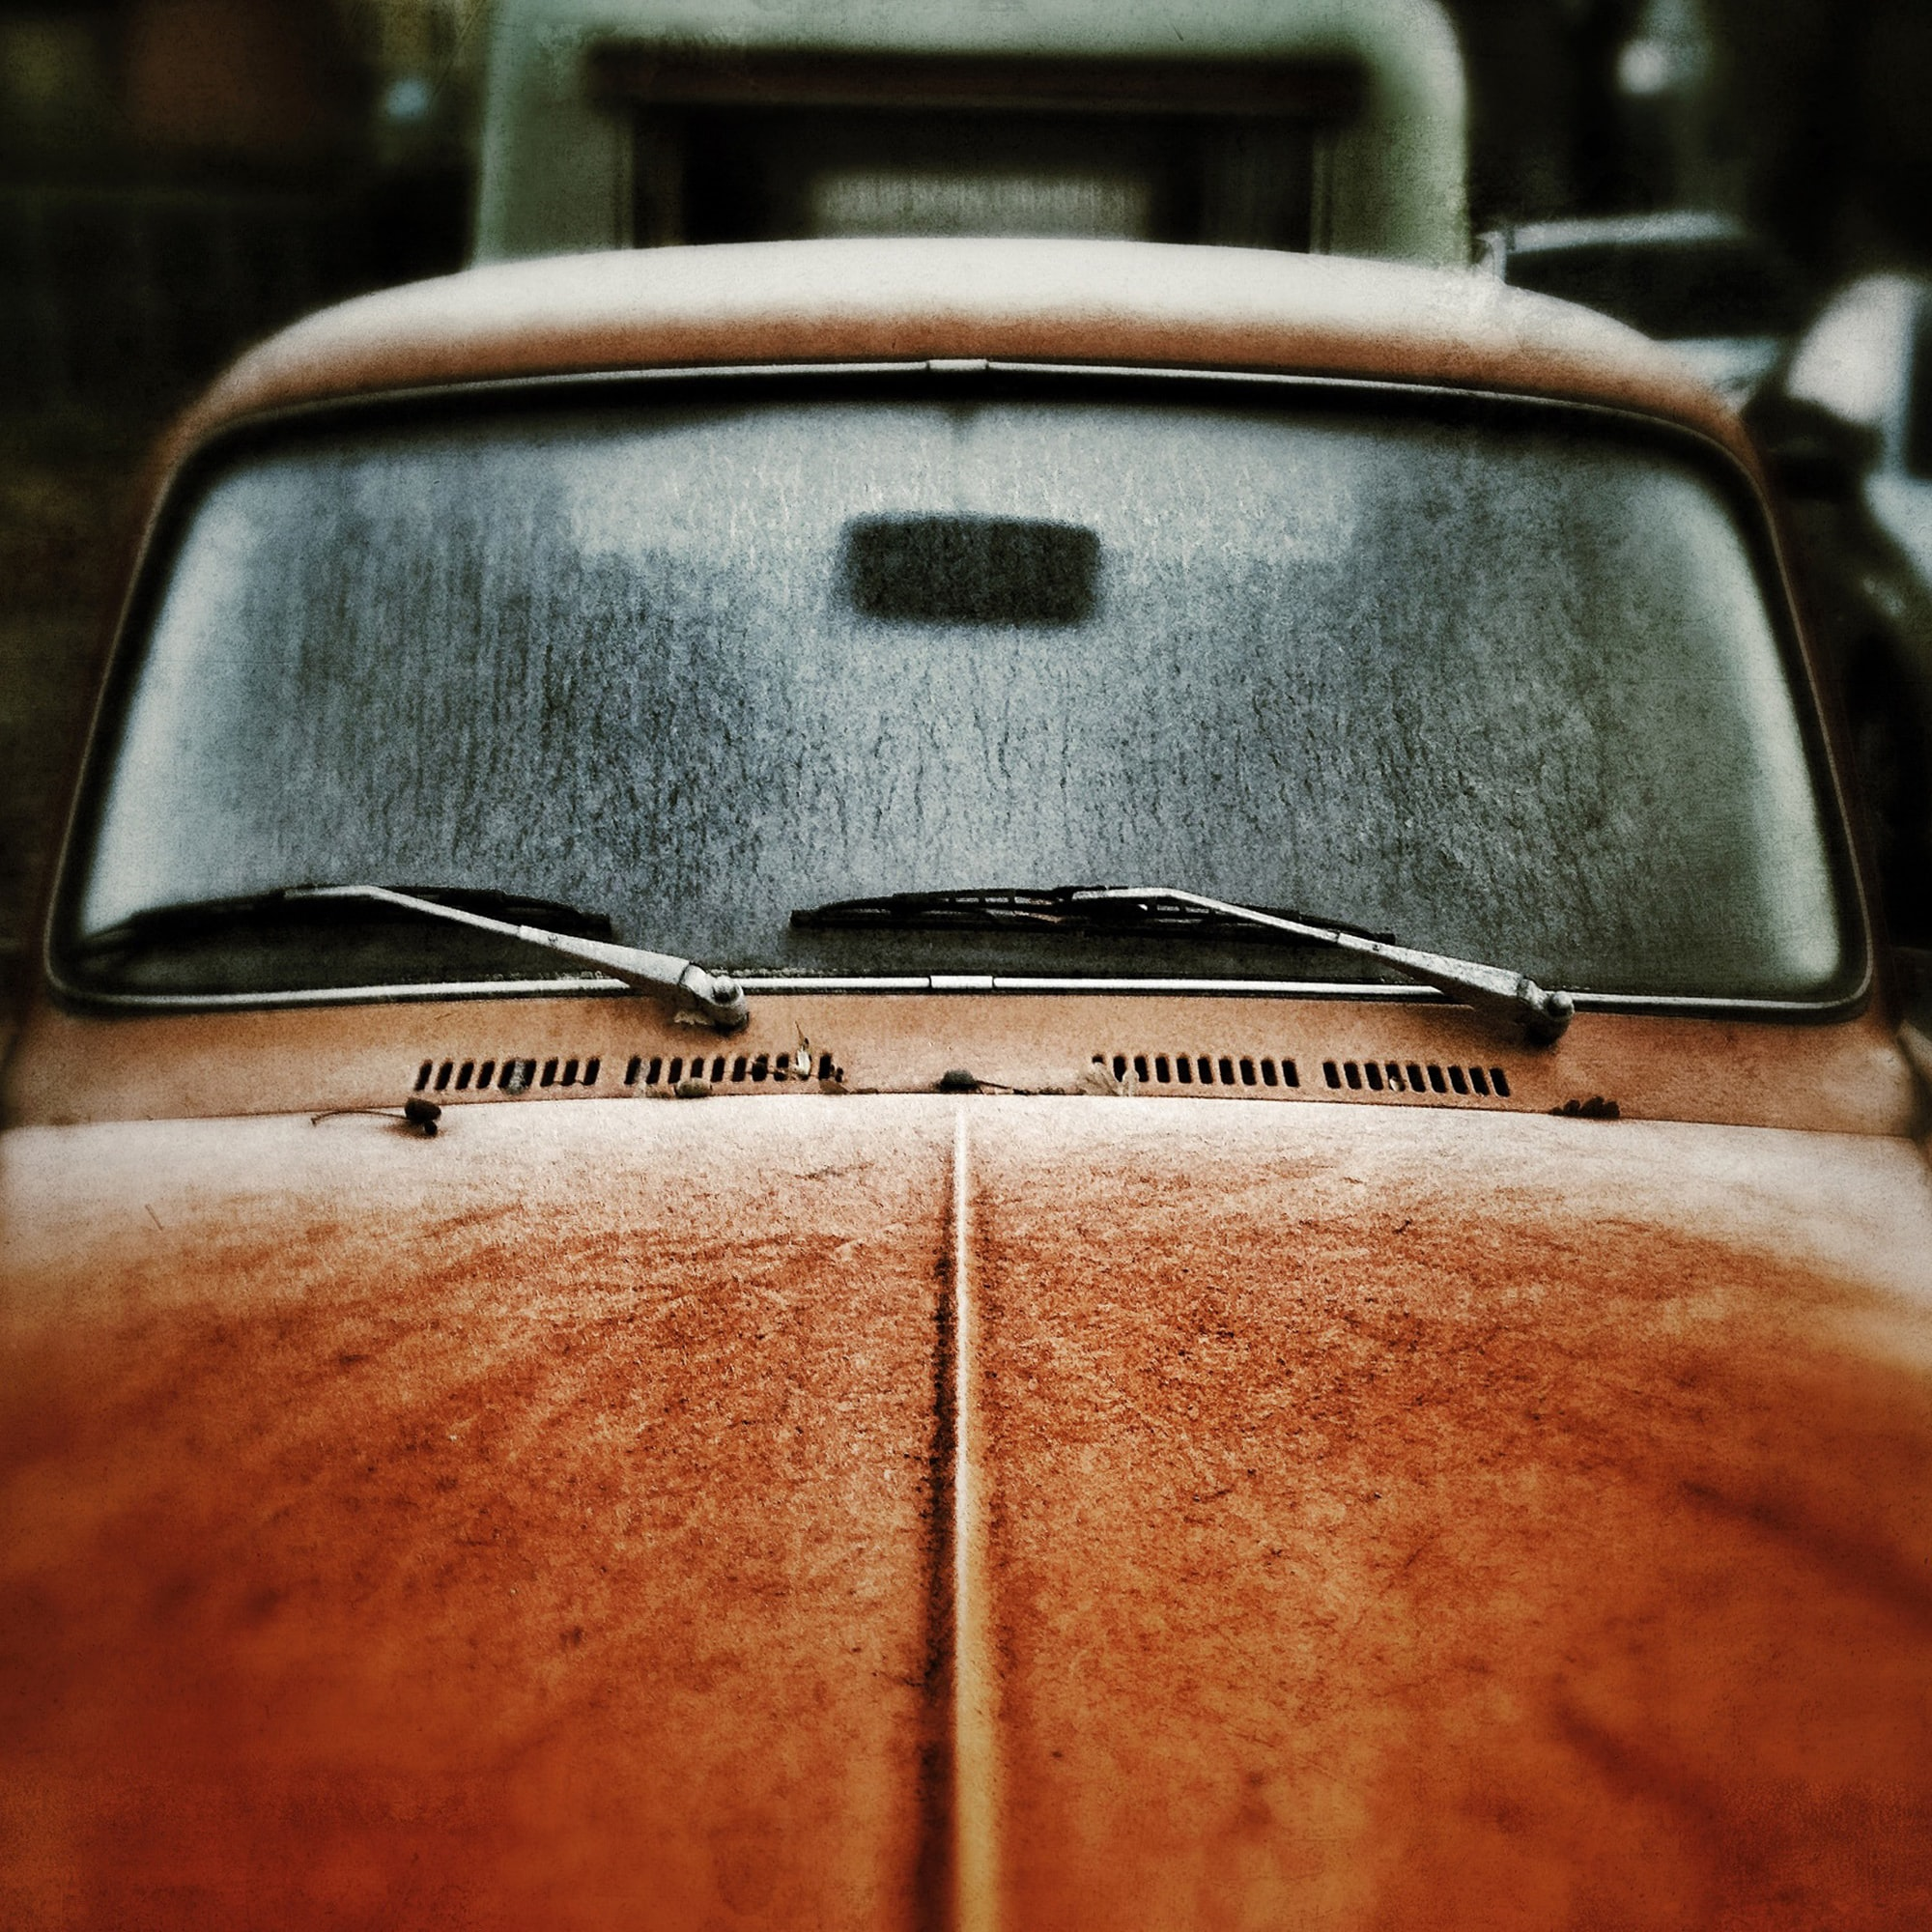 Frost-covered hood and windshield of an orange Volkswagen Beetle